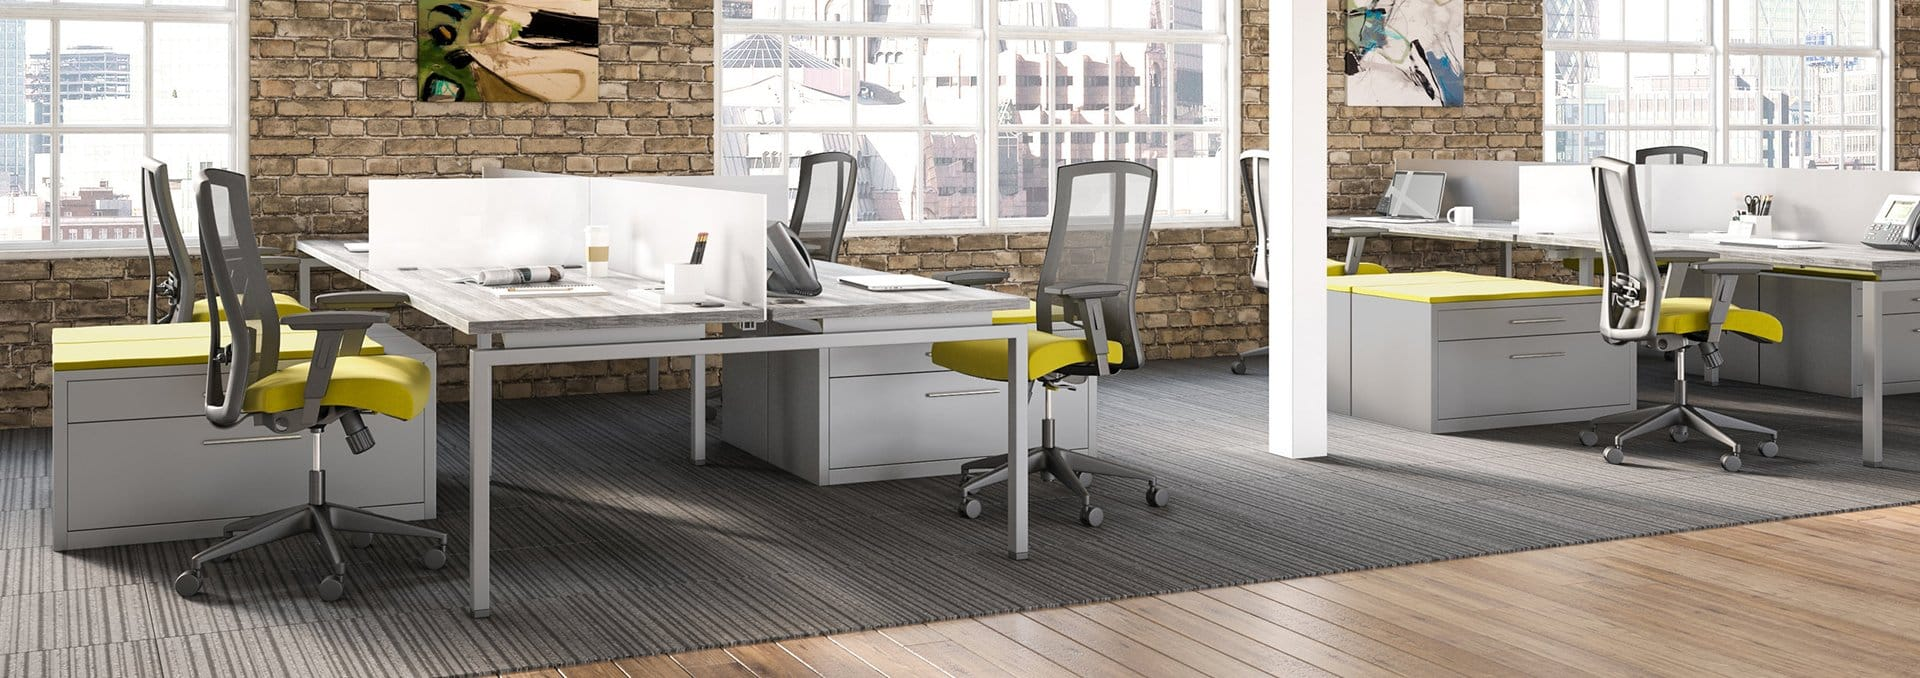 office room furniture design. Open Office Furniture Designs By Clear The Benching Experts At Benchingworksations.com Room Design